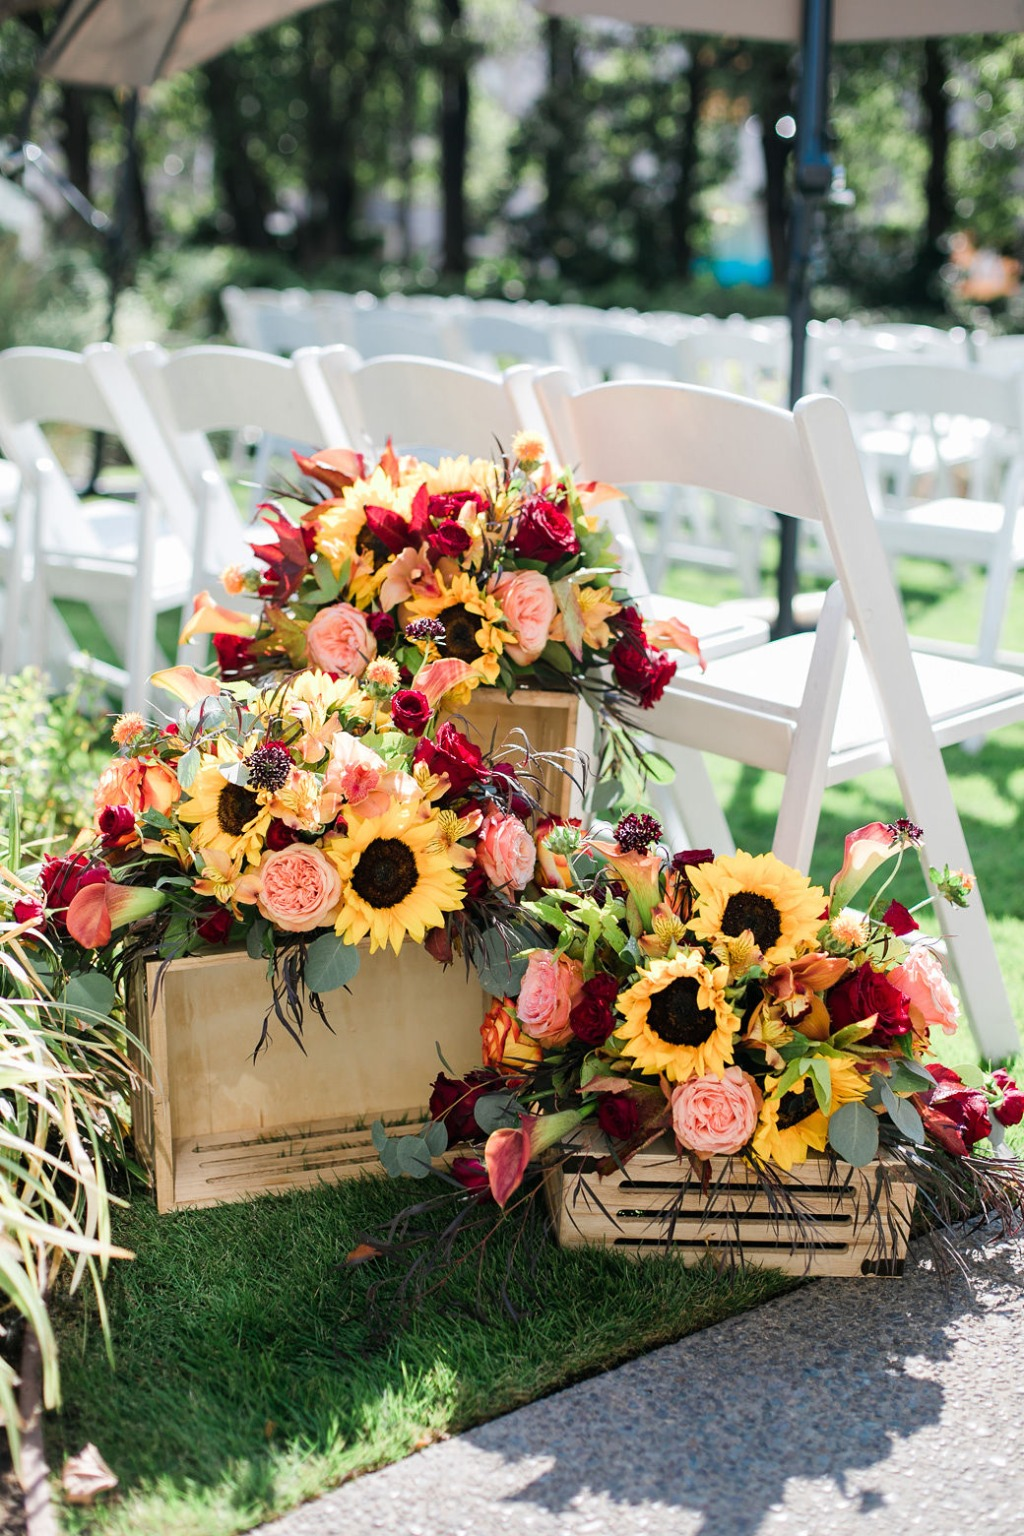 Happy Thanksgiving! The warm colors in these florals are definitely setting the tone for this cozy fall-inspired wedding!